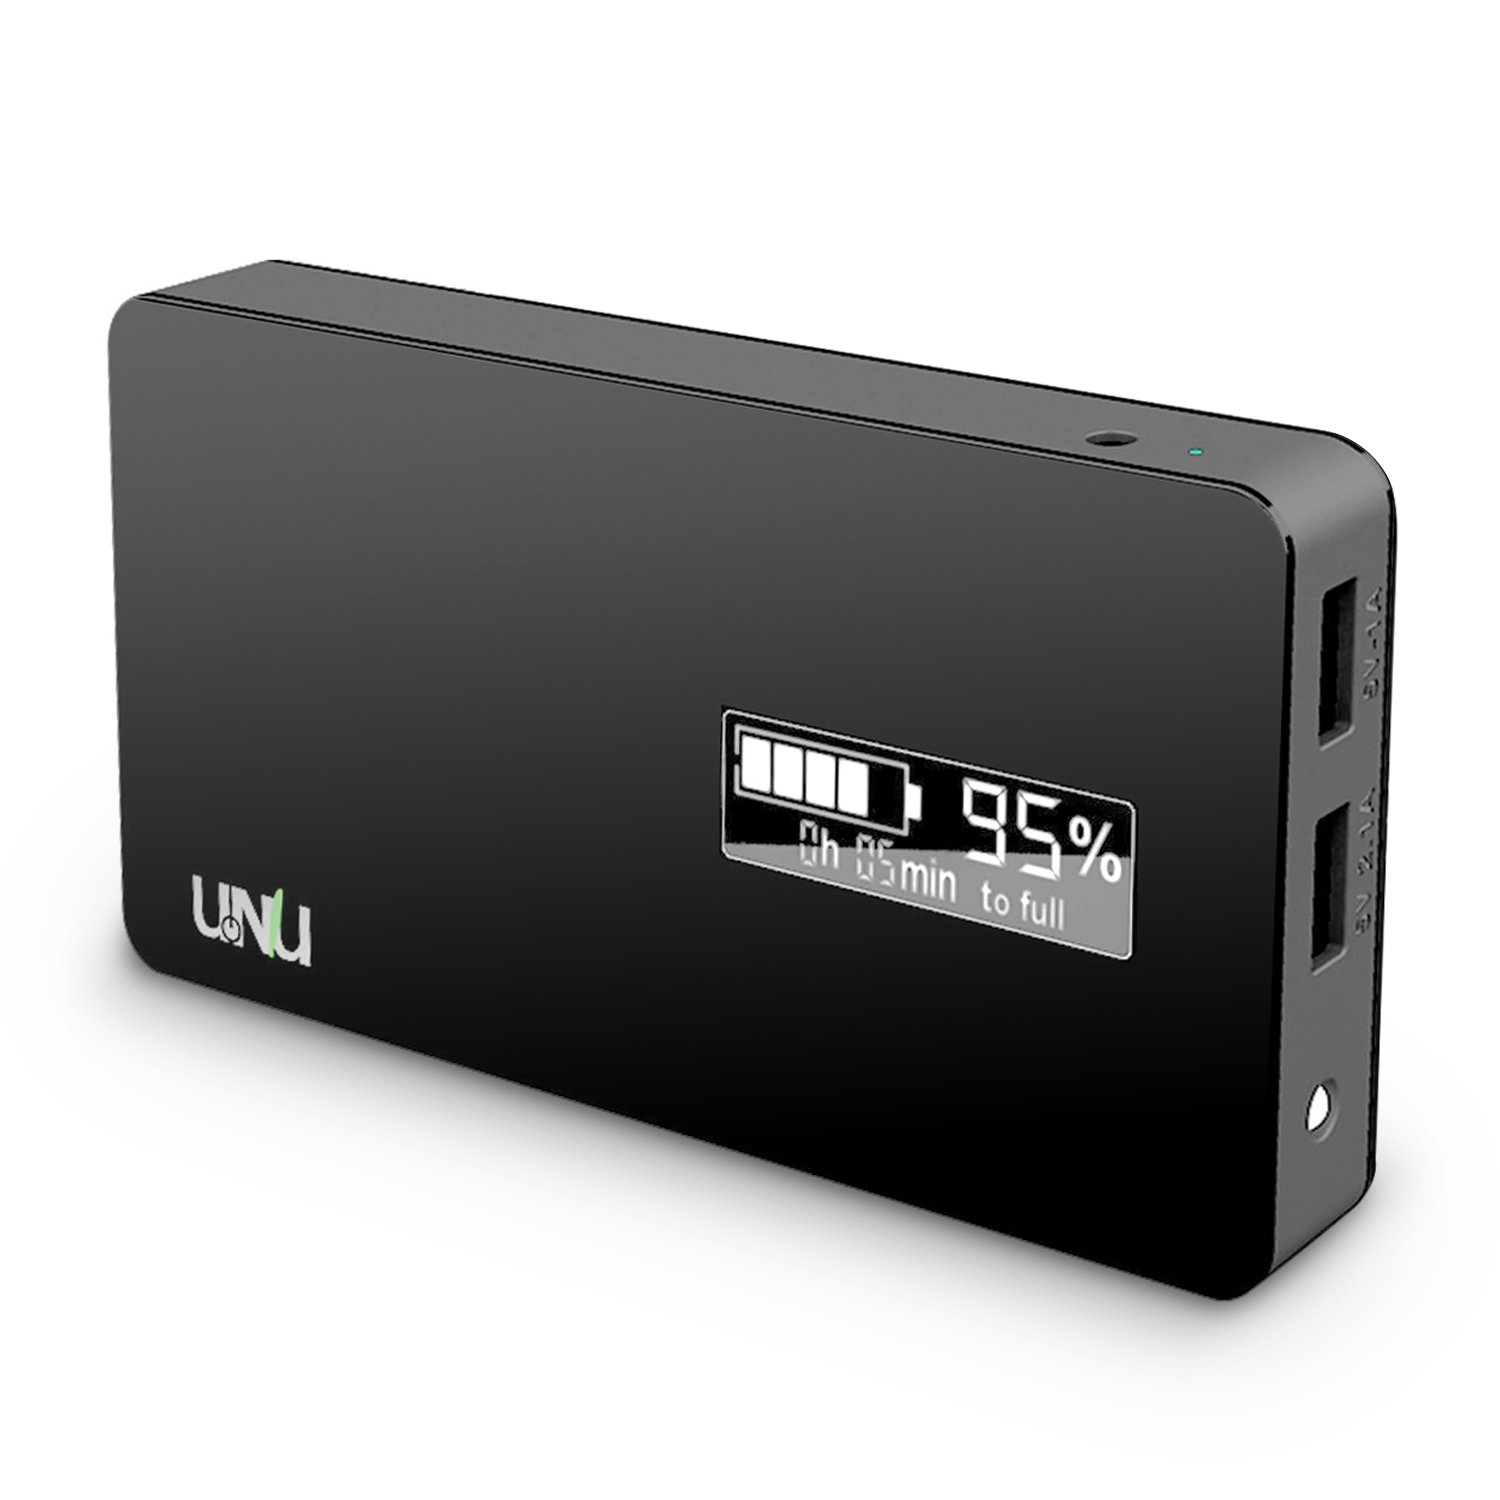 UNU Ultrapak Tour 10000mAH Portable Charger (Black) - 2 USB Port External Battery Pack 8X Fast Charging Power Bank for iPhone 6, iPhone 6 Plus, 5S 4S, Samsung Galaxy S6, S5 and other Android Phone